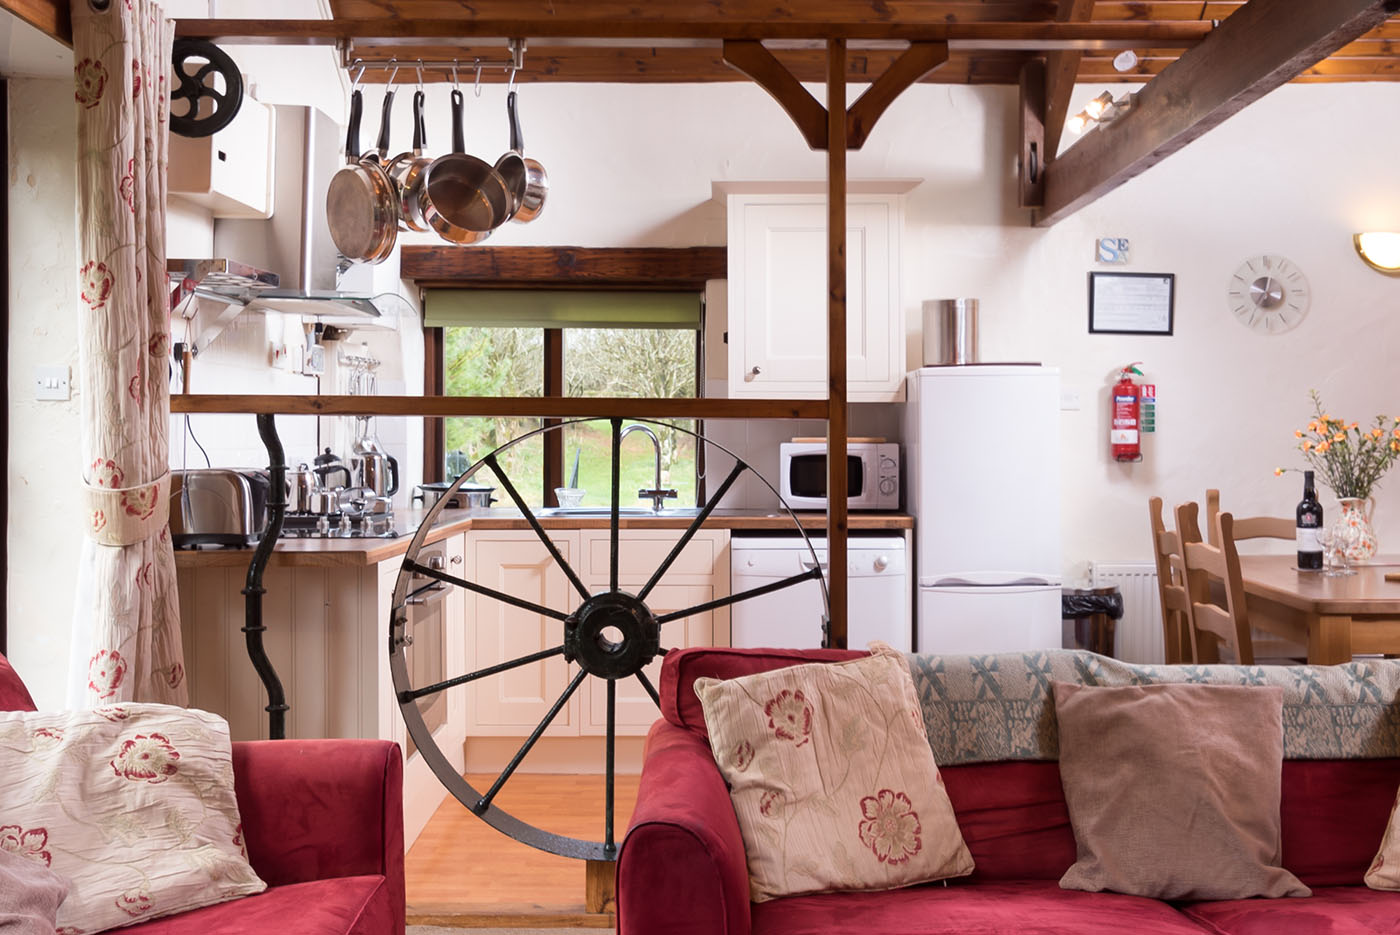 Mill wheel kitchen area